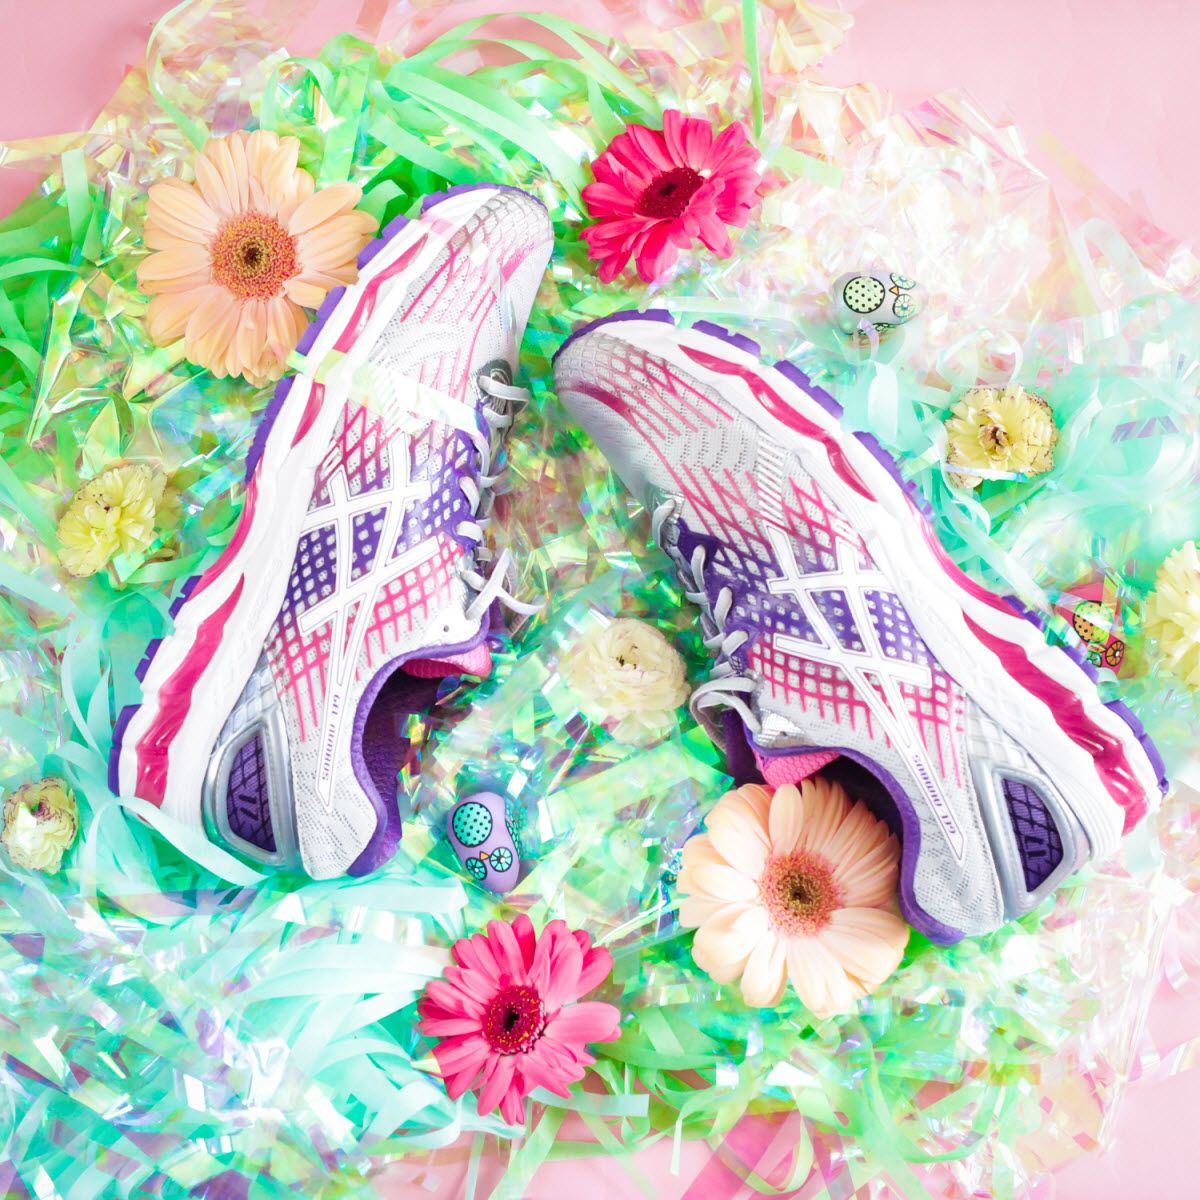 asics with flowers